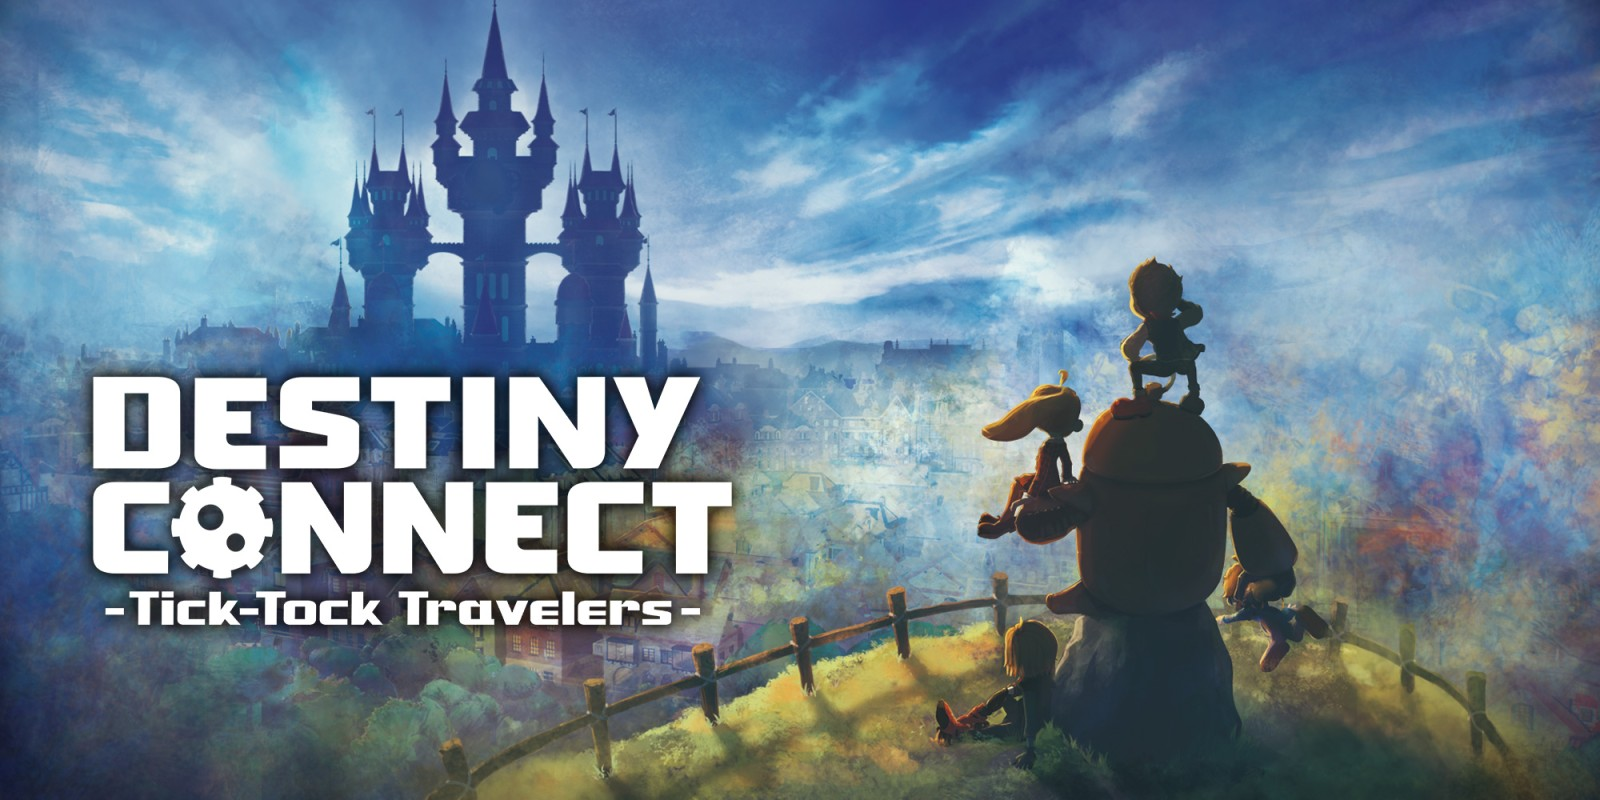 Destiny Connect: Tick-Tock Travelers